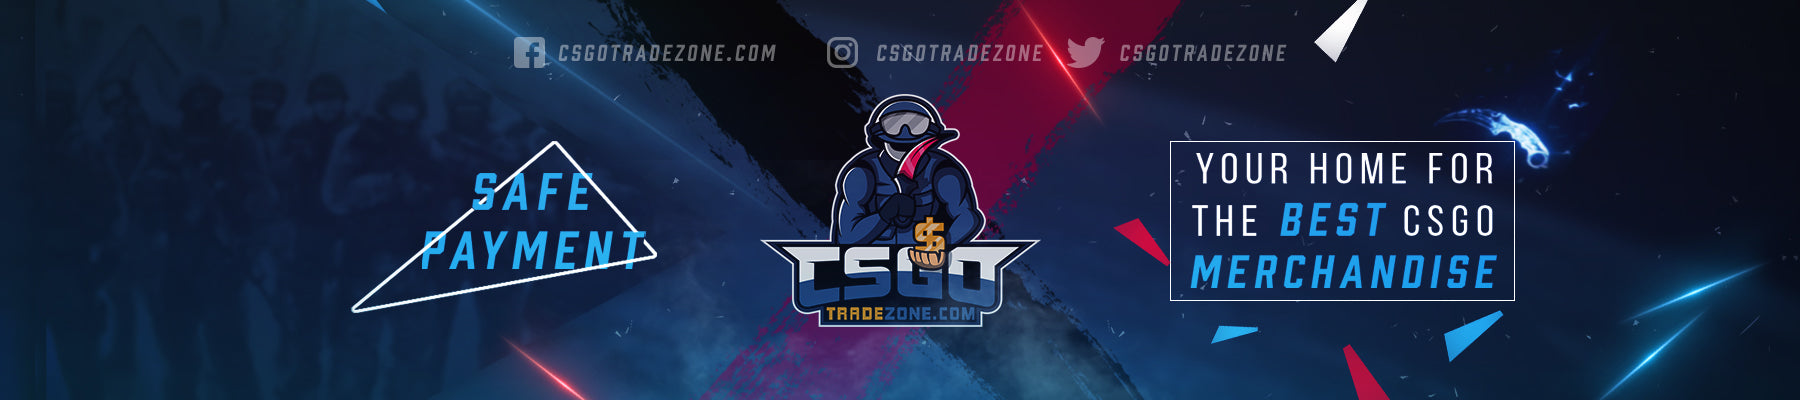 Csgotradezone Banner for Csgo rankings